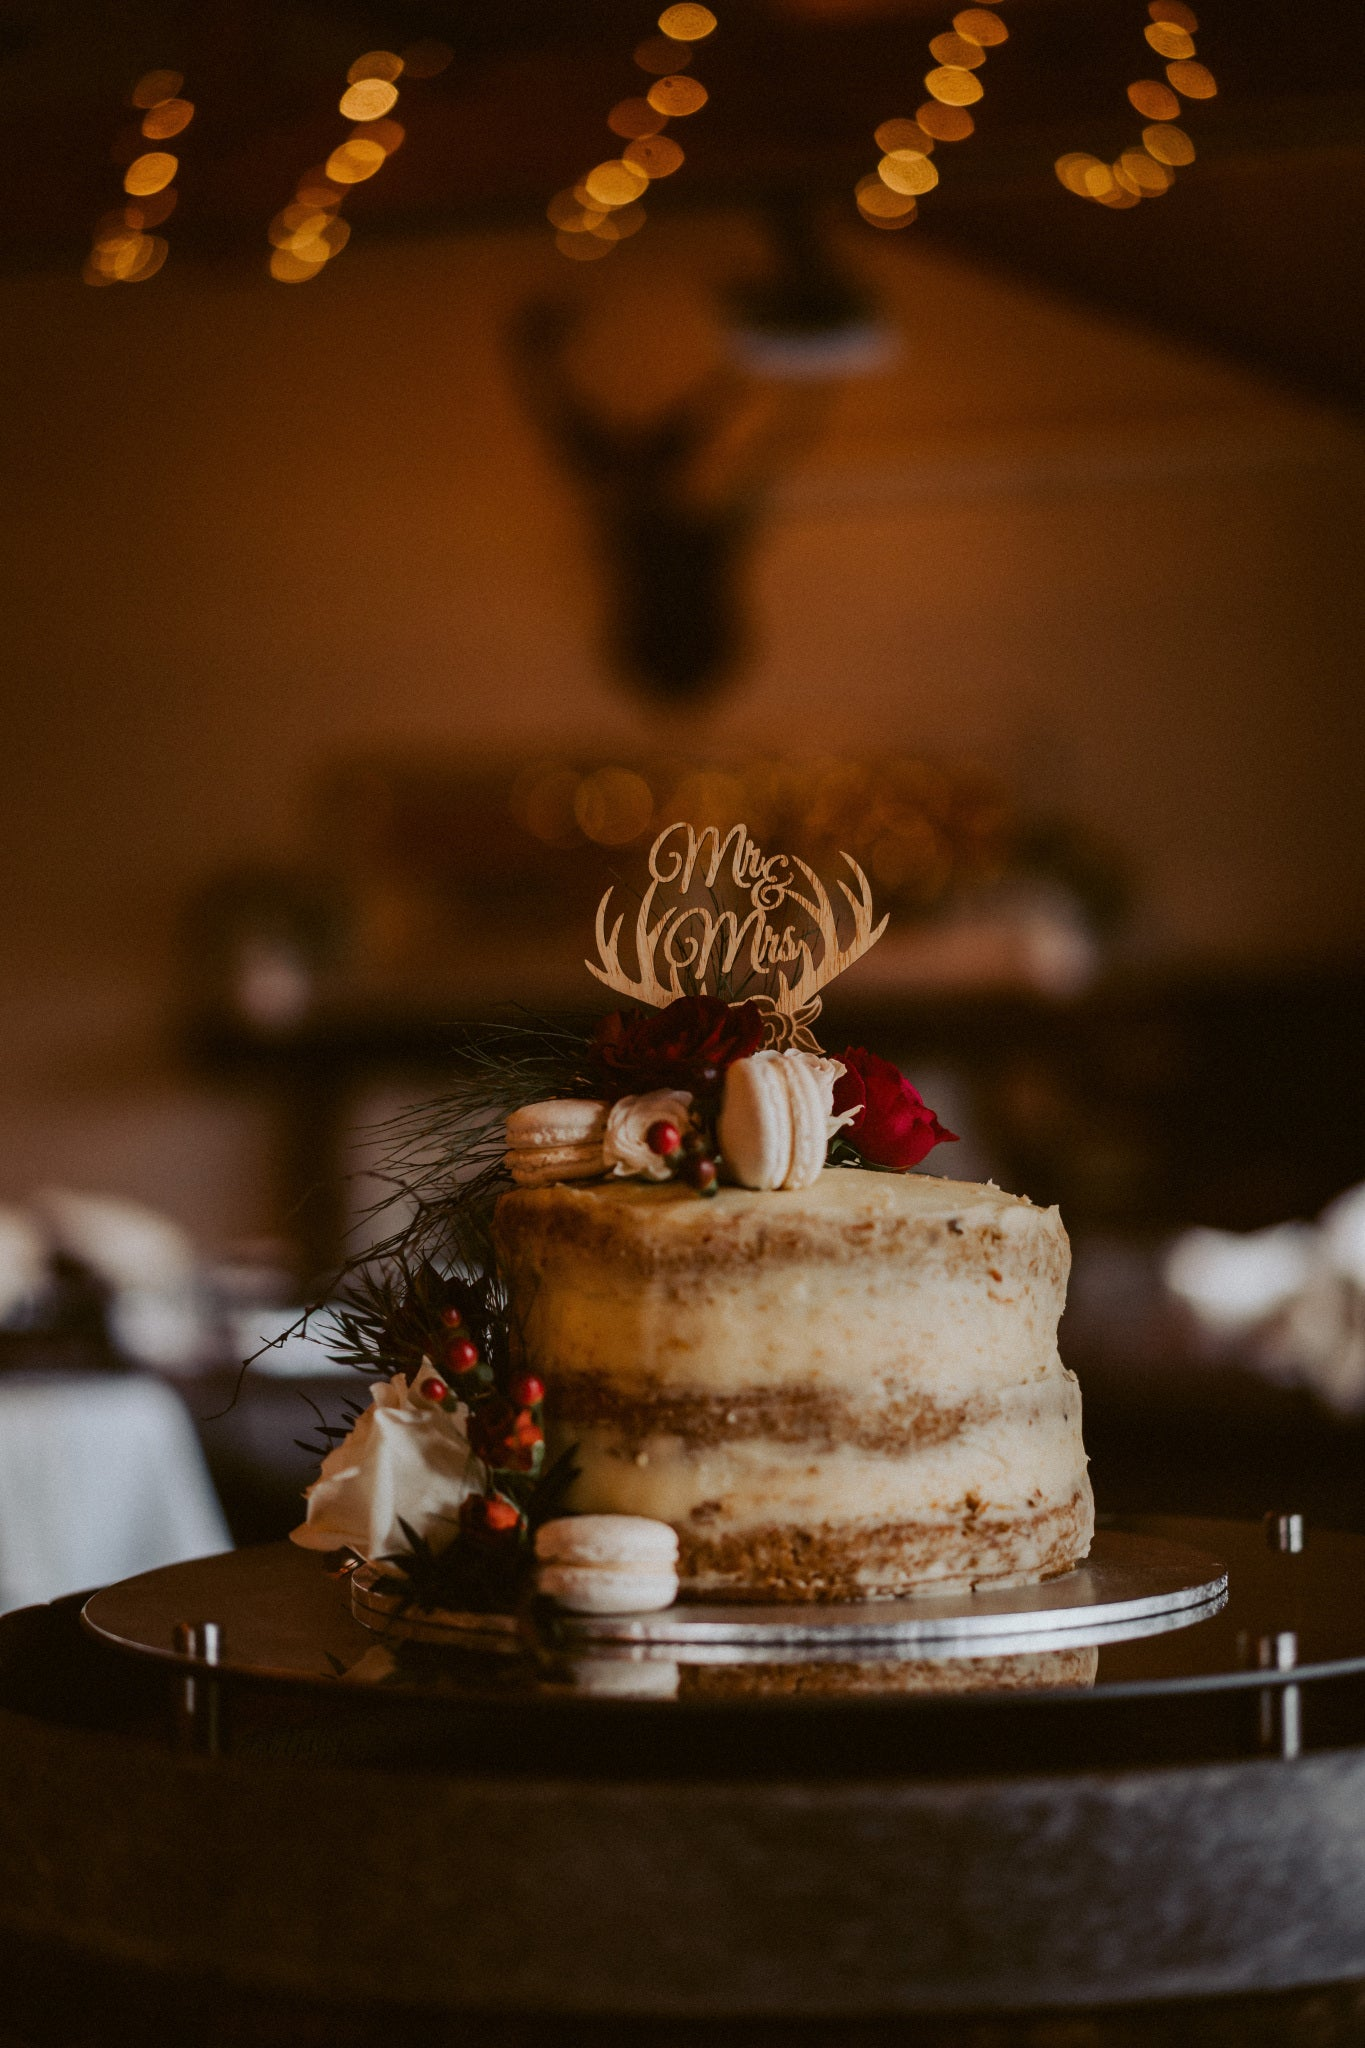 Lily + Josh | Rustic Buttercream Cake | Cake Topper | The Paper Gazelle Wedding Feature